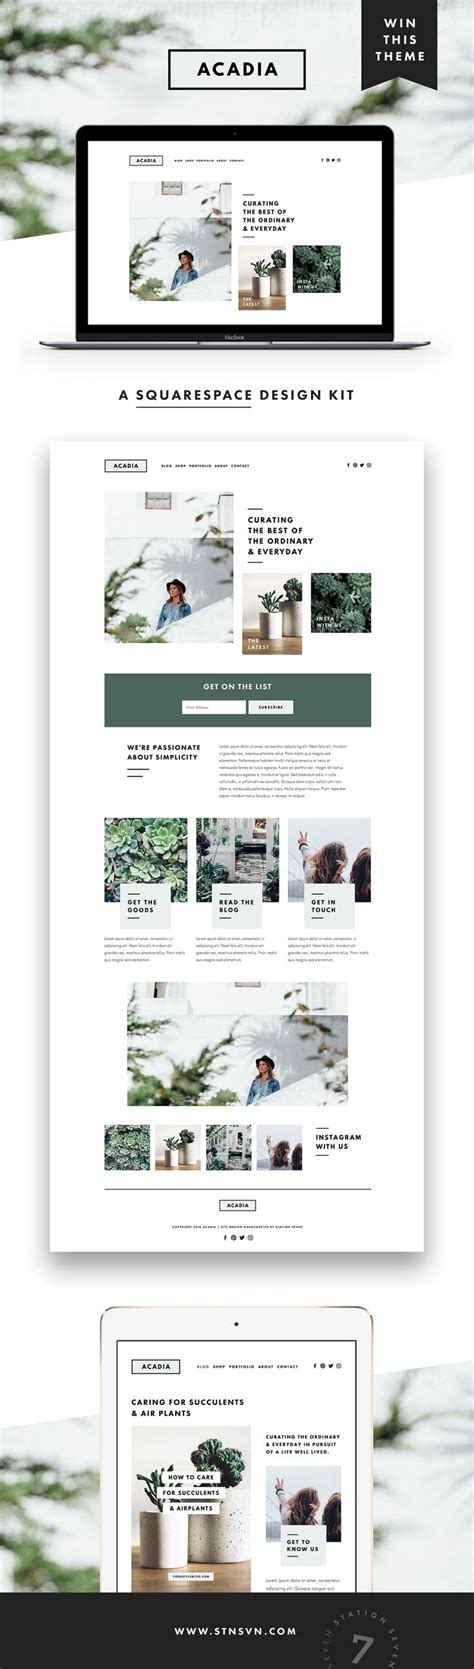 magazine layout squarespace website design modern minimal squarespace design